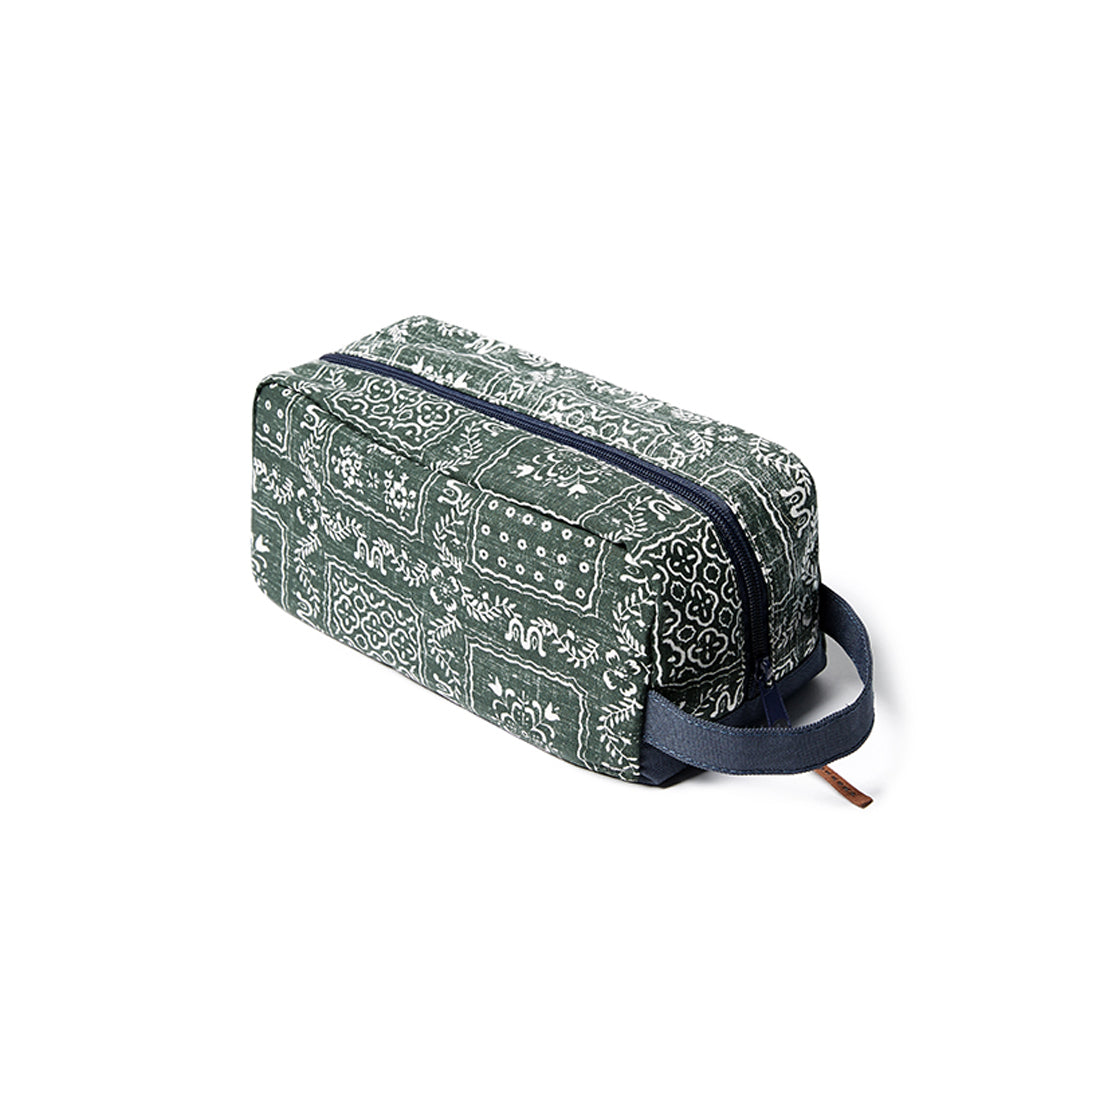 ORIGINAL LAHAINA / DOPP KIT - Zoomed